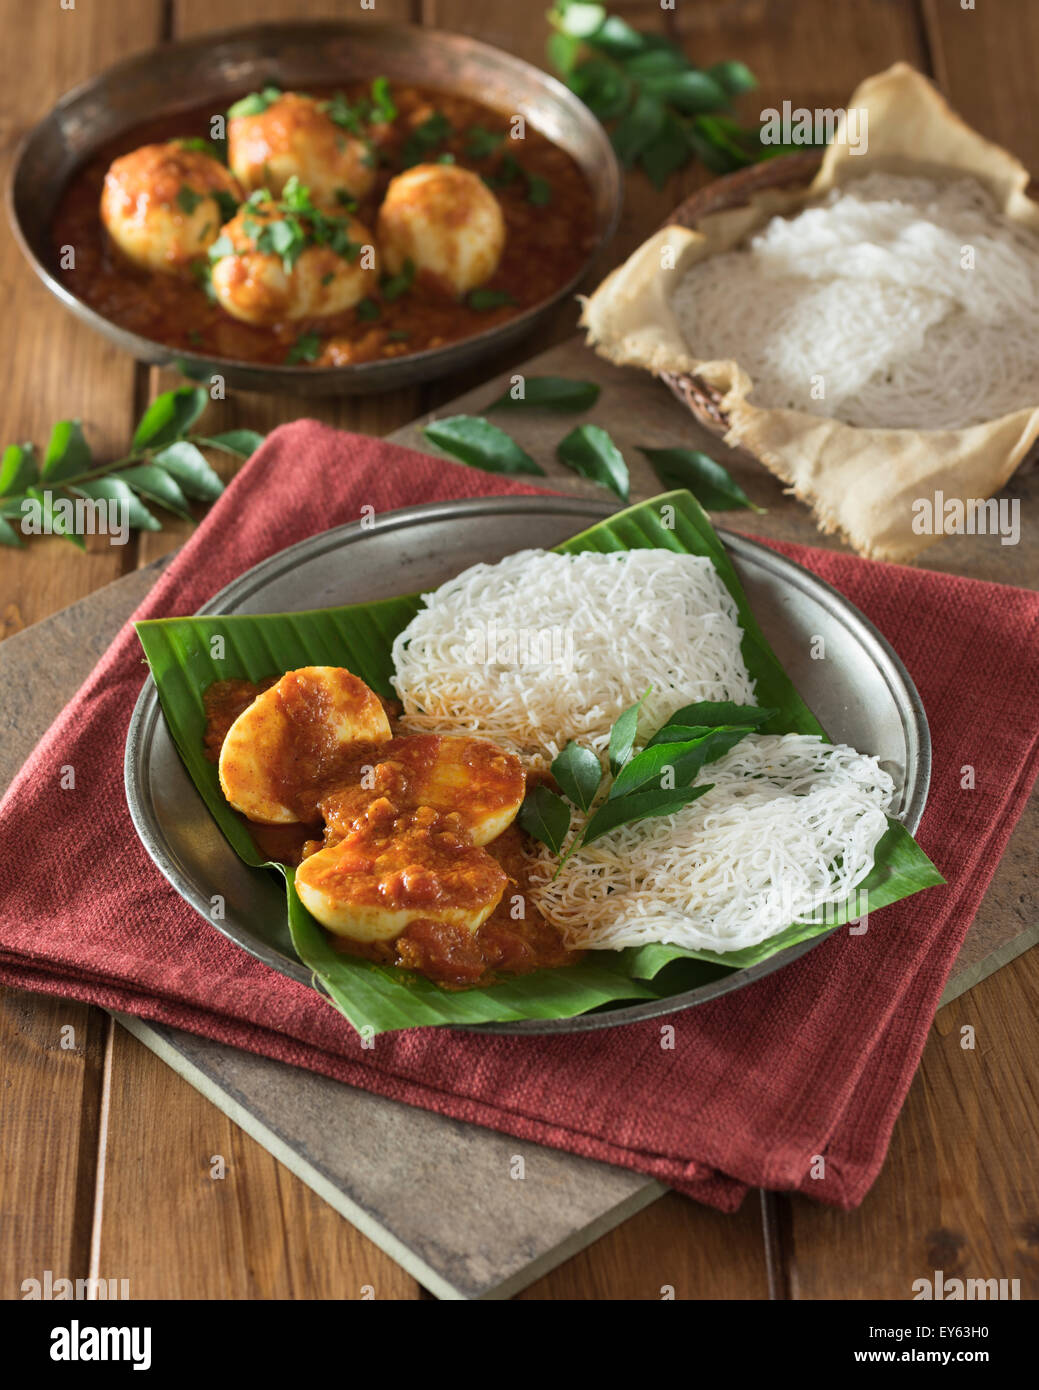 Egg curry and string hoppers. Sri Lanka and South India Food - Stock Image